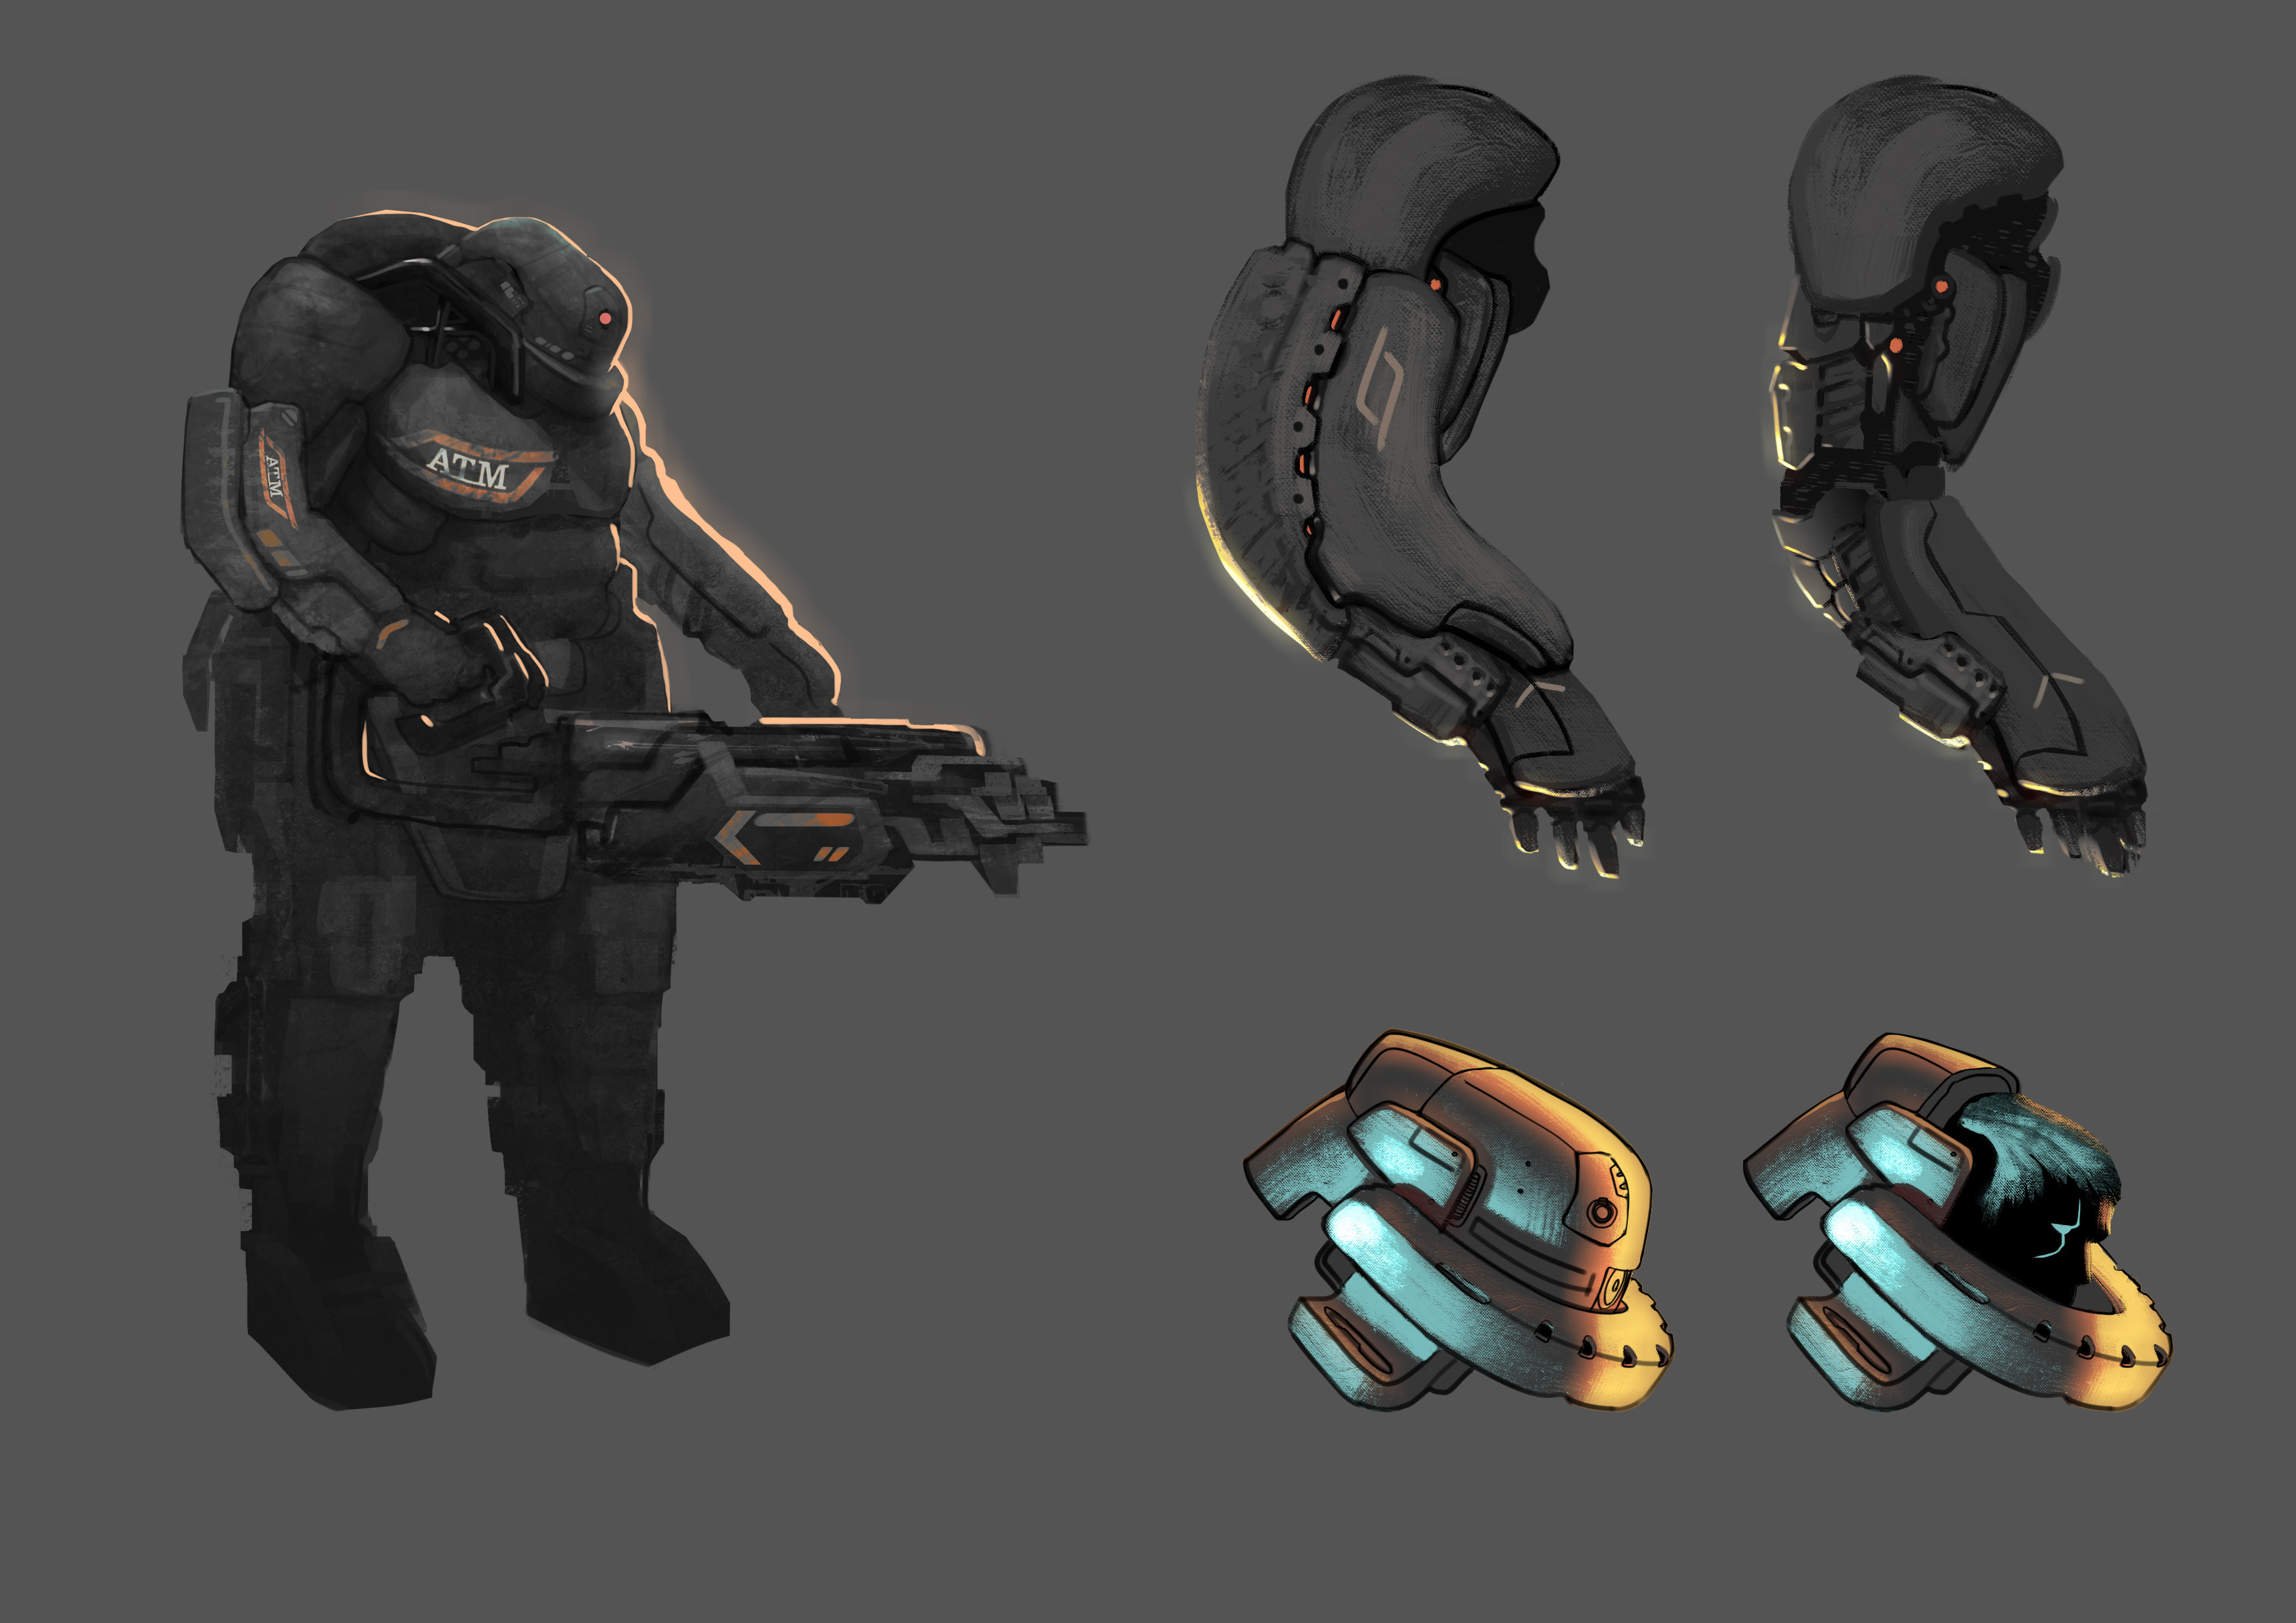 Callouts of the layers of protection on the arm and the helmet.